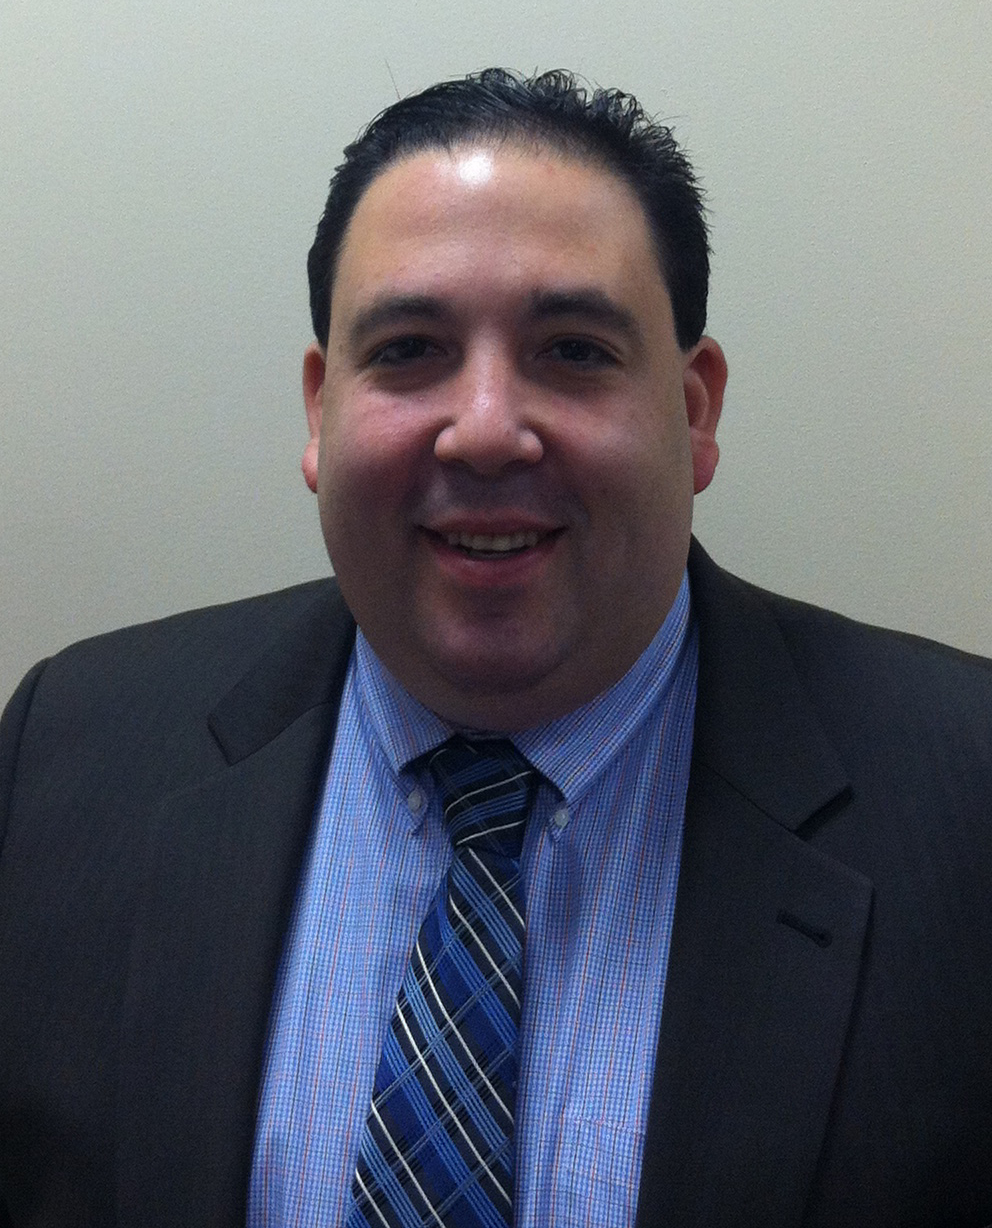 Matthew Bonilla has been appointed appointed vice-president of student administrative services for Touro College and University System